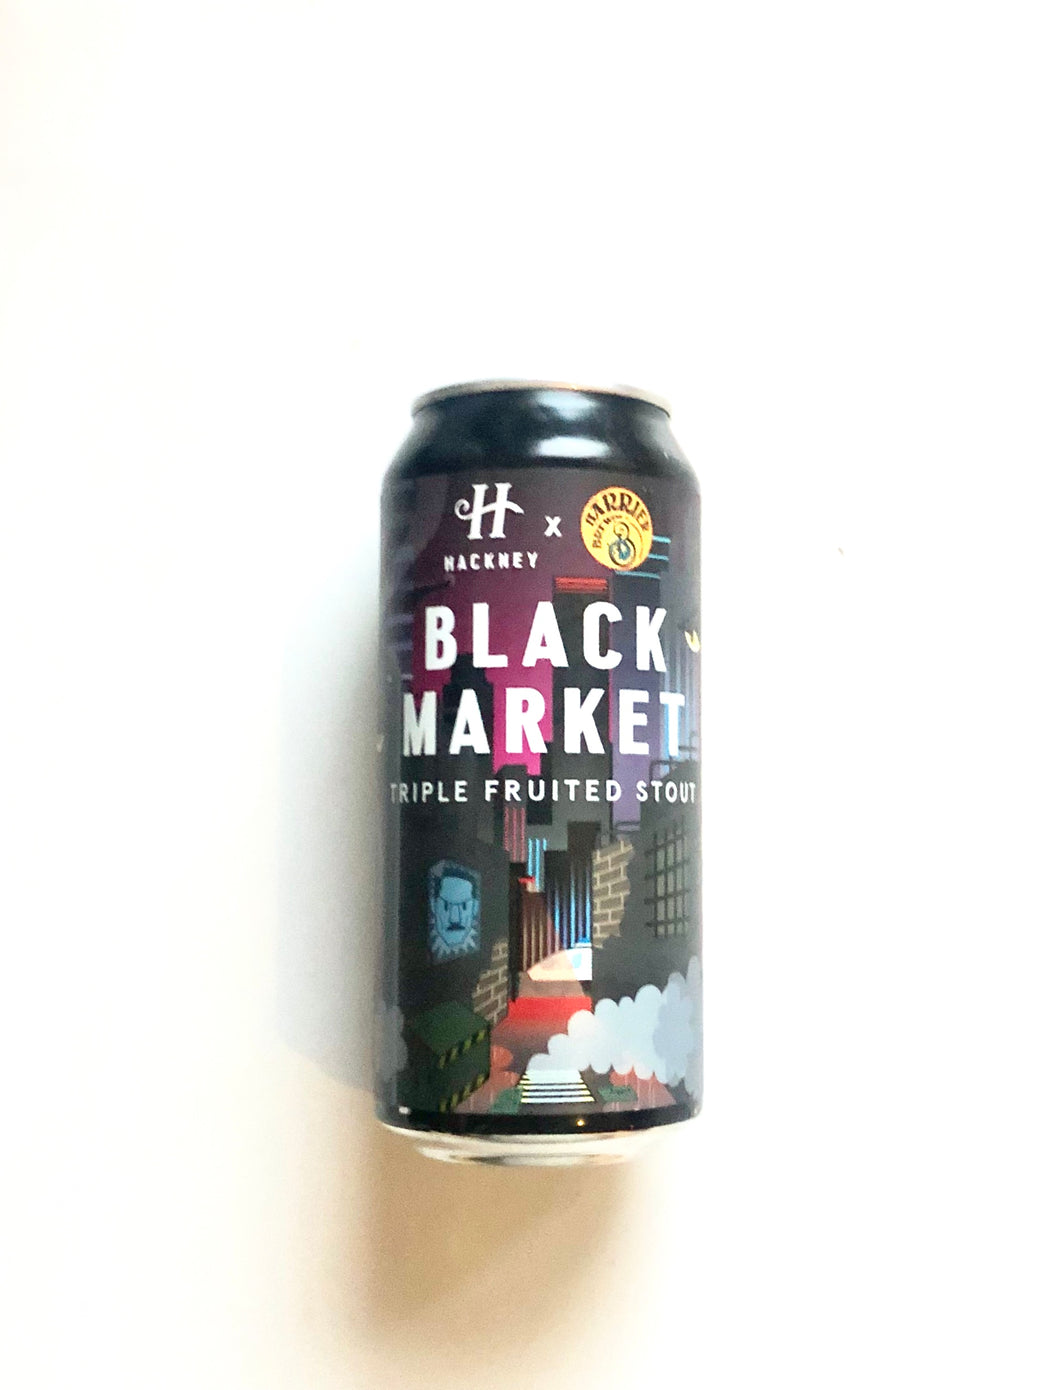 Black Market Triple Fruited Stout